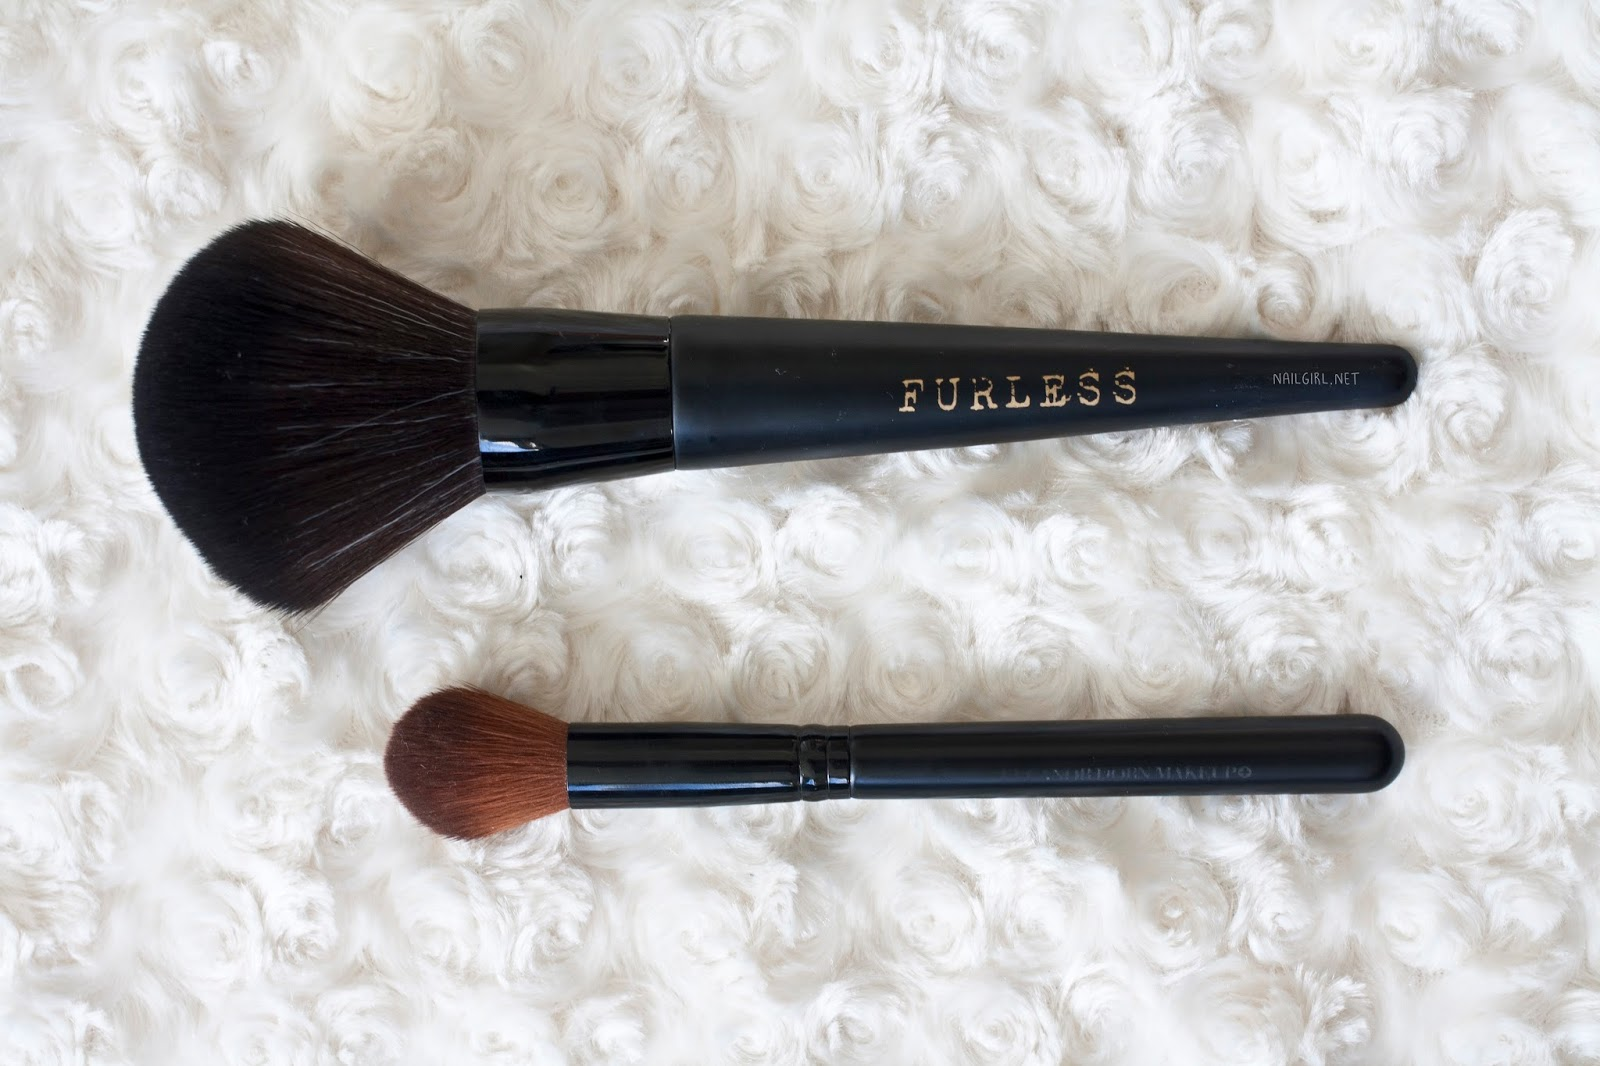 furless cosmetics makeup brush eleanor dorn